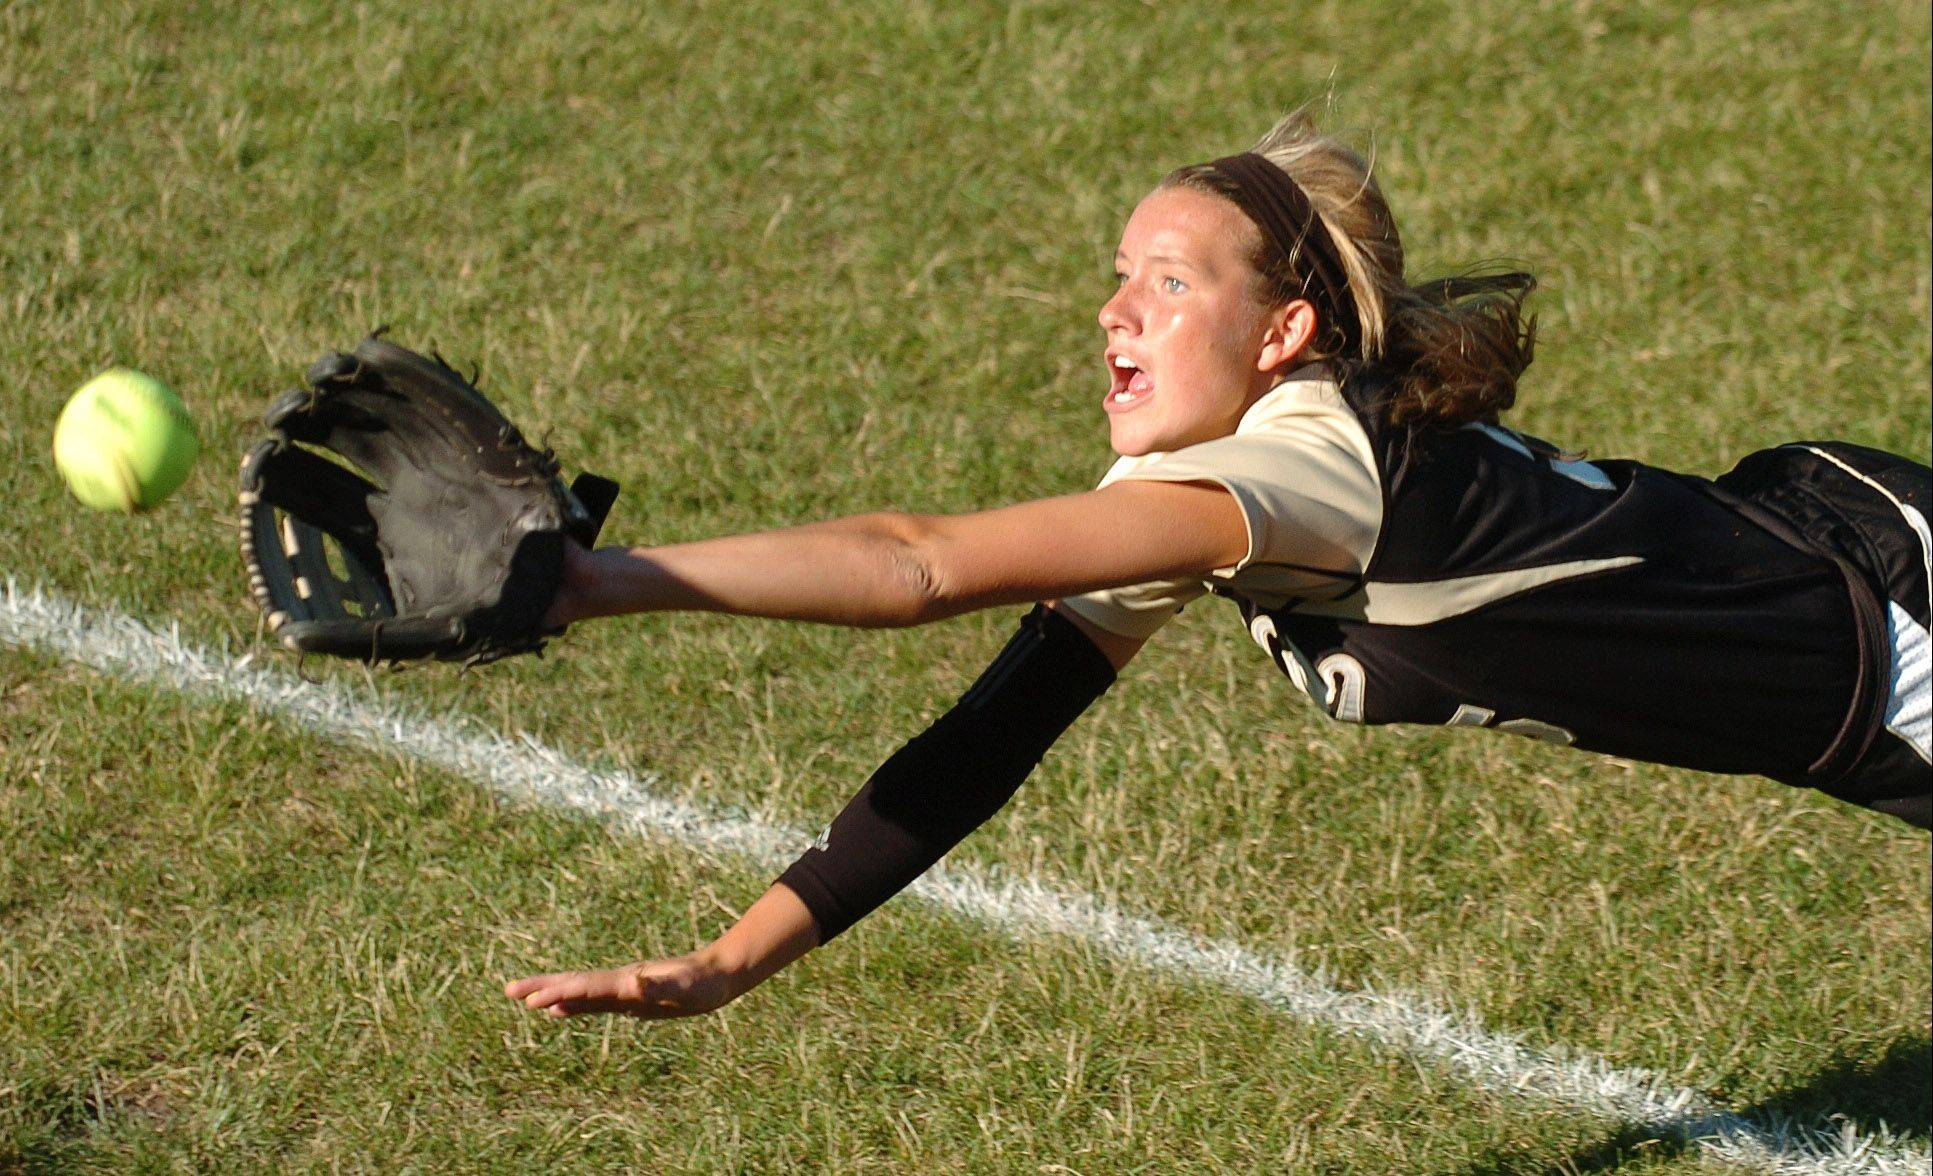 Jordyn Bowen of Grayslake North stretches out in pursuit of a foul ball against Marengo.